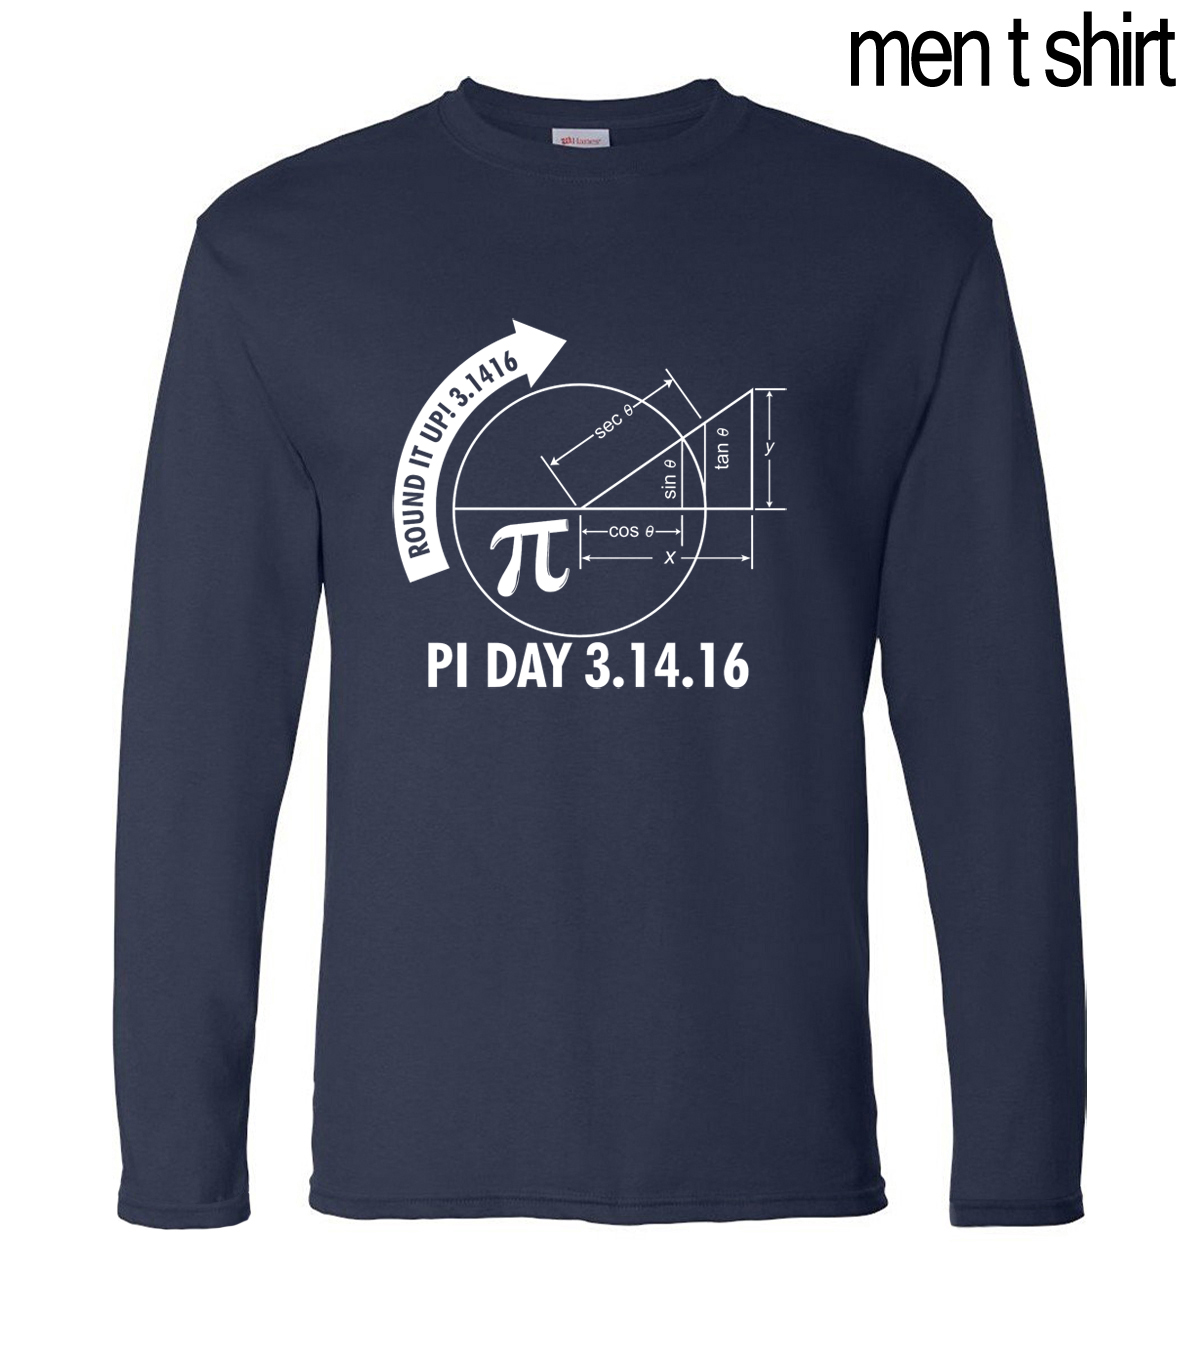 Pi Day 3.1416 Round Math Graph 2017 new autumn 100% cotton fashion casual men long sleeve T-shirts fashion adult top tees S-2XL